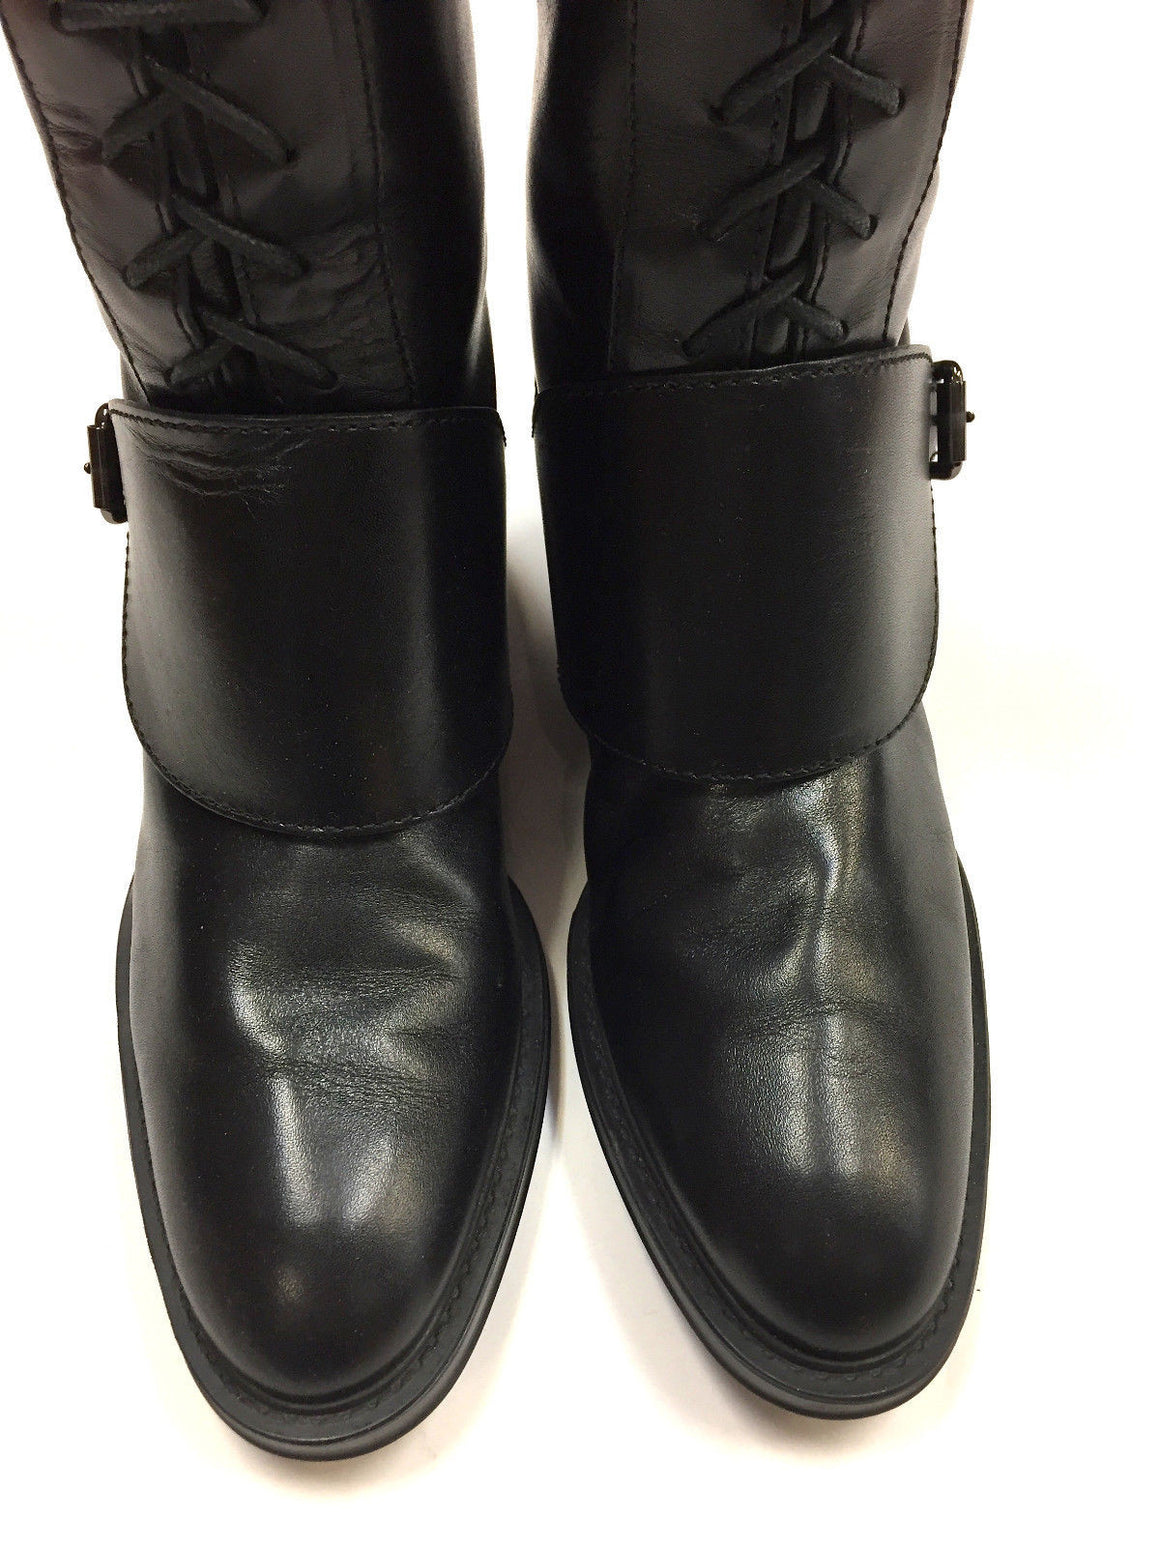 bisbiz.com TOD's   Black Leather Lace-Up Front Tall Pull-on Riding Boots  with Buckled Strap  Size: 7.5 - Bis Luxury Resale